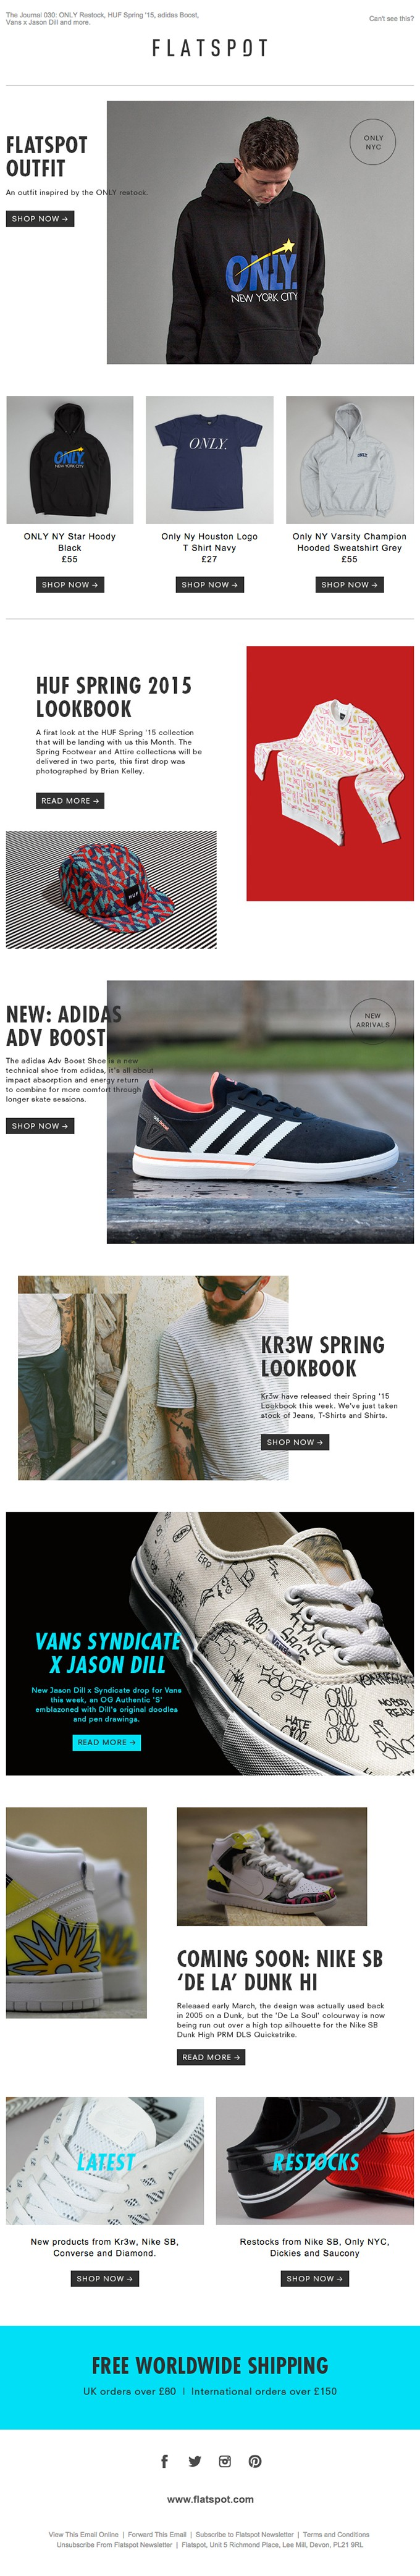 The Journal 030: ONLY Restock, HUF Spring '15, adidas Boost, Vans x Jason Dill and more.